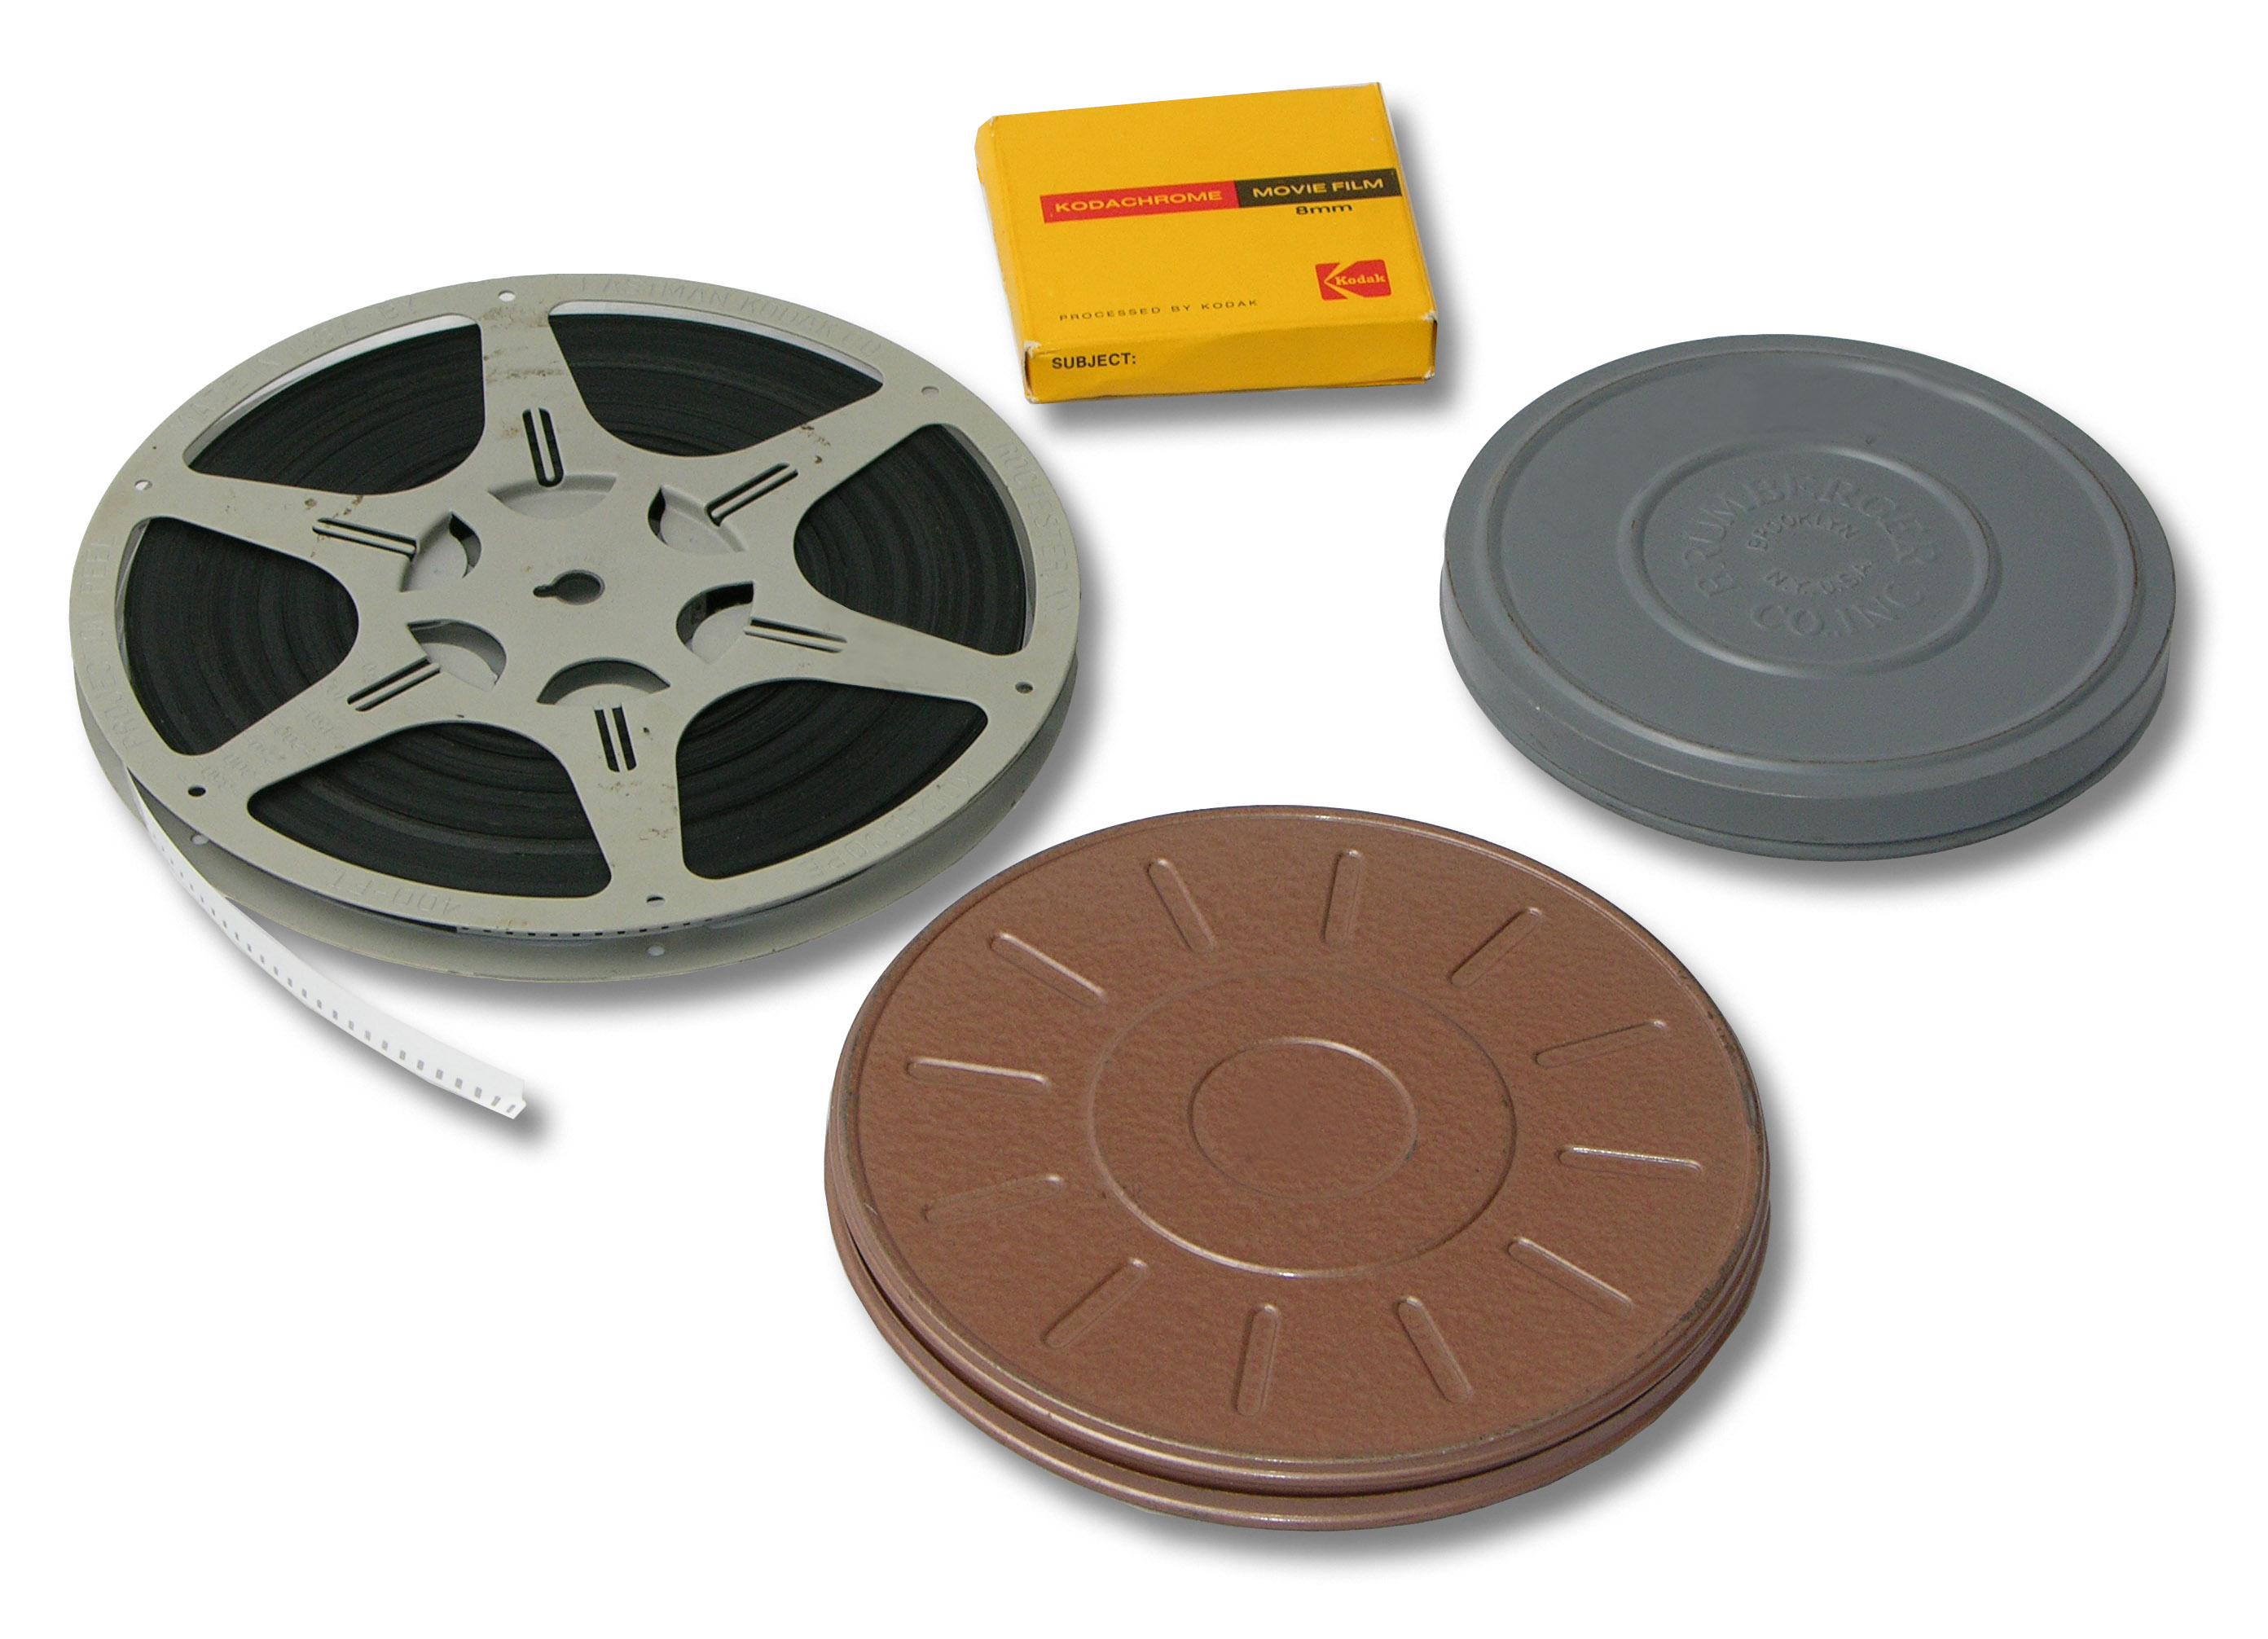 8mm film transfers